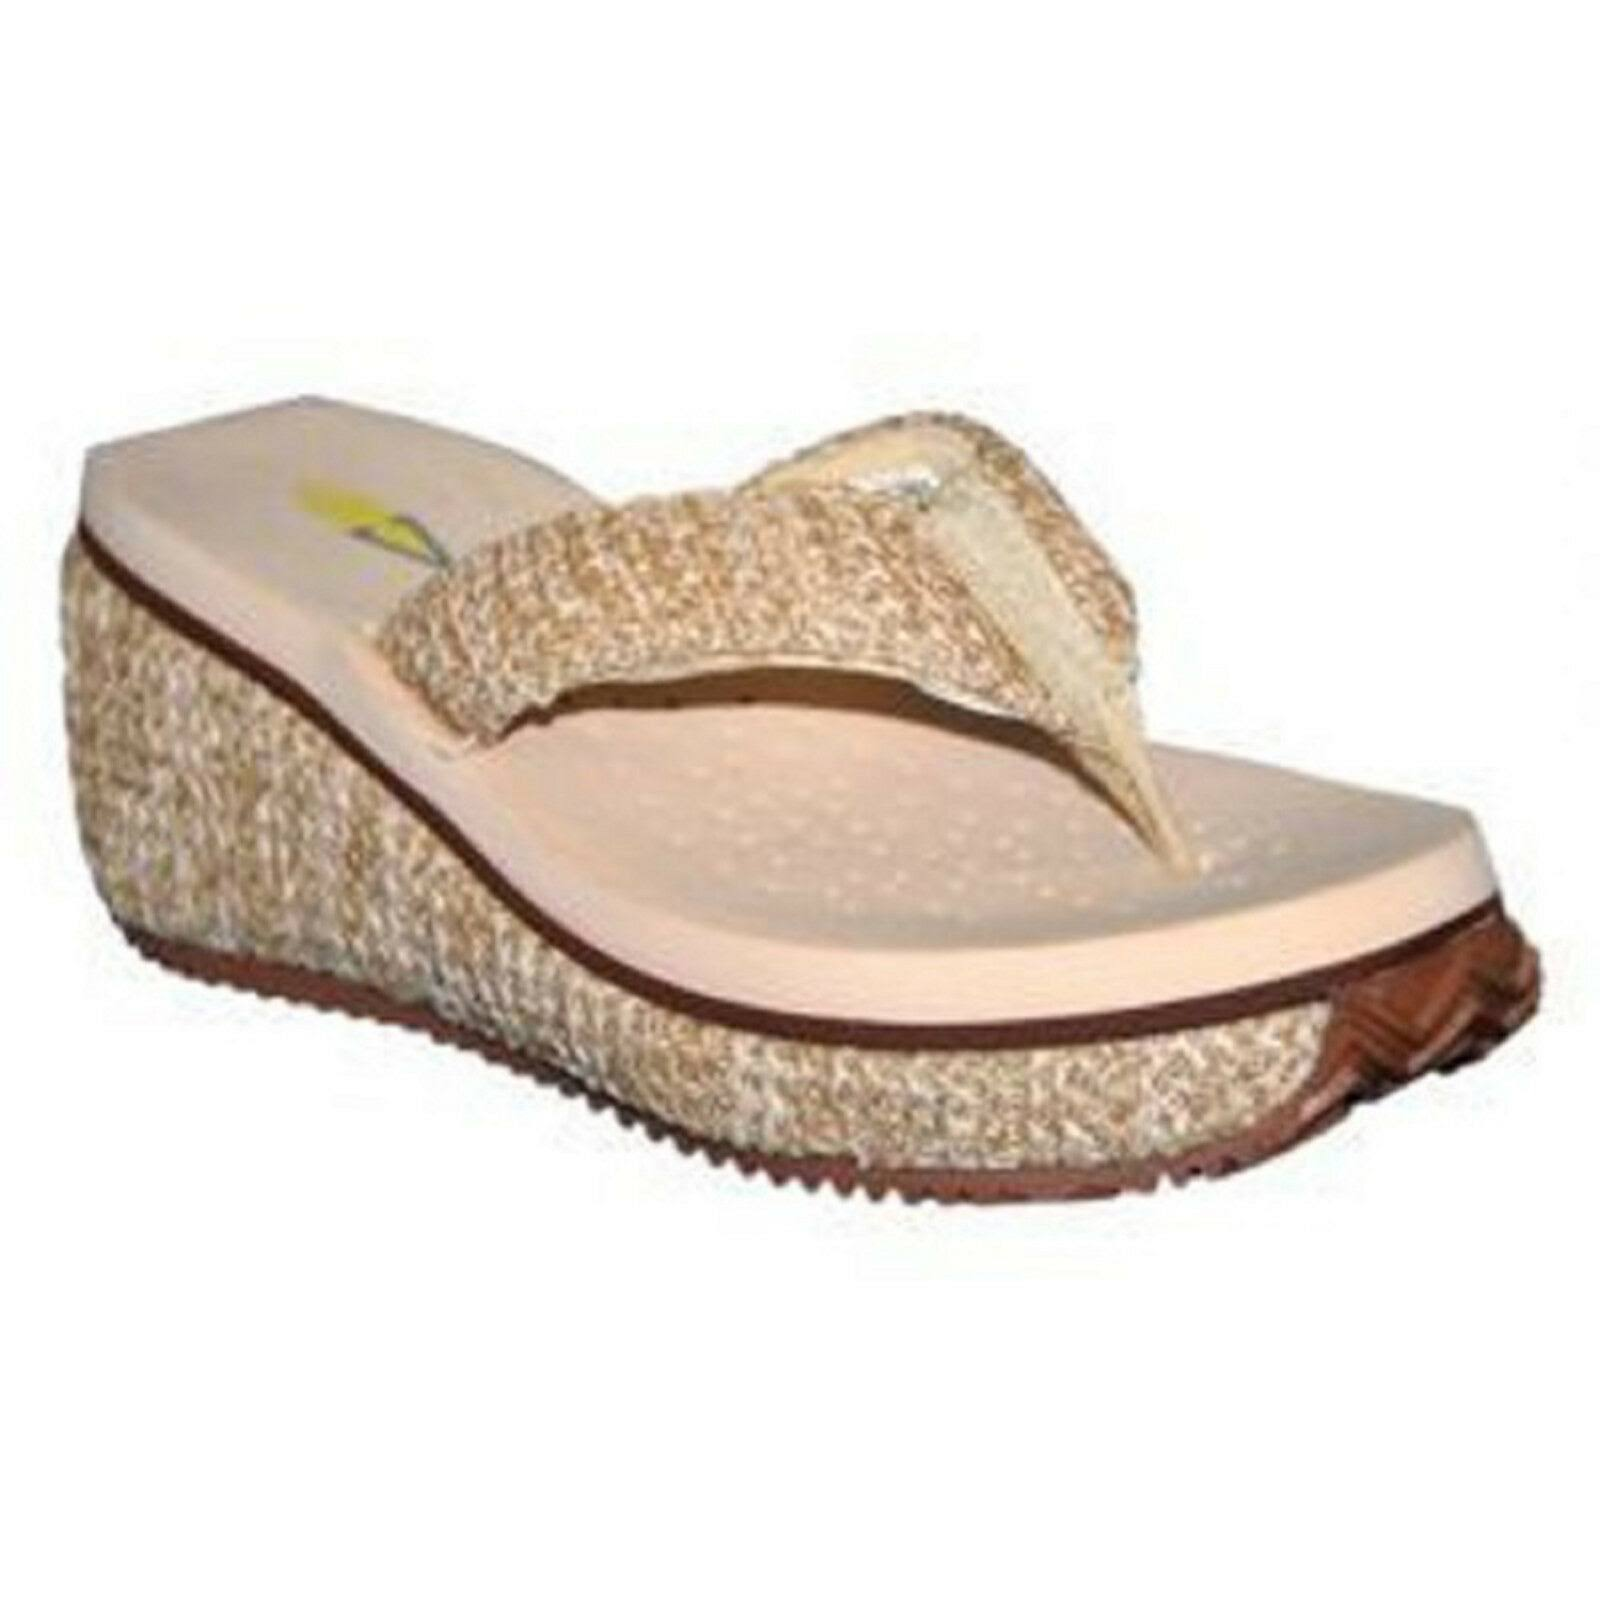 Volatile Women's Island Wedge Sandals - Natural, 9 USW